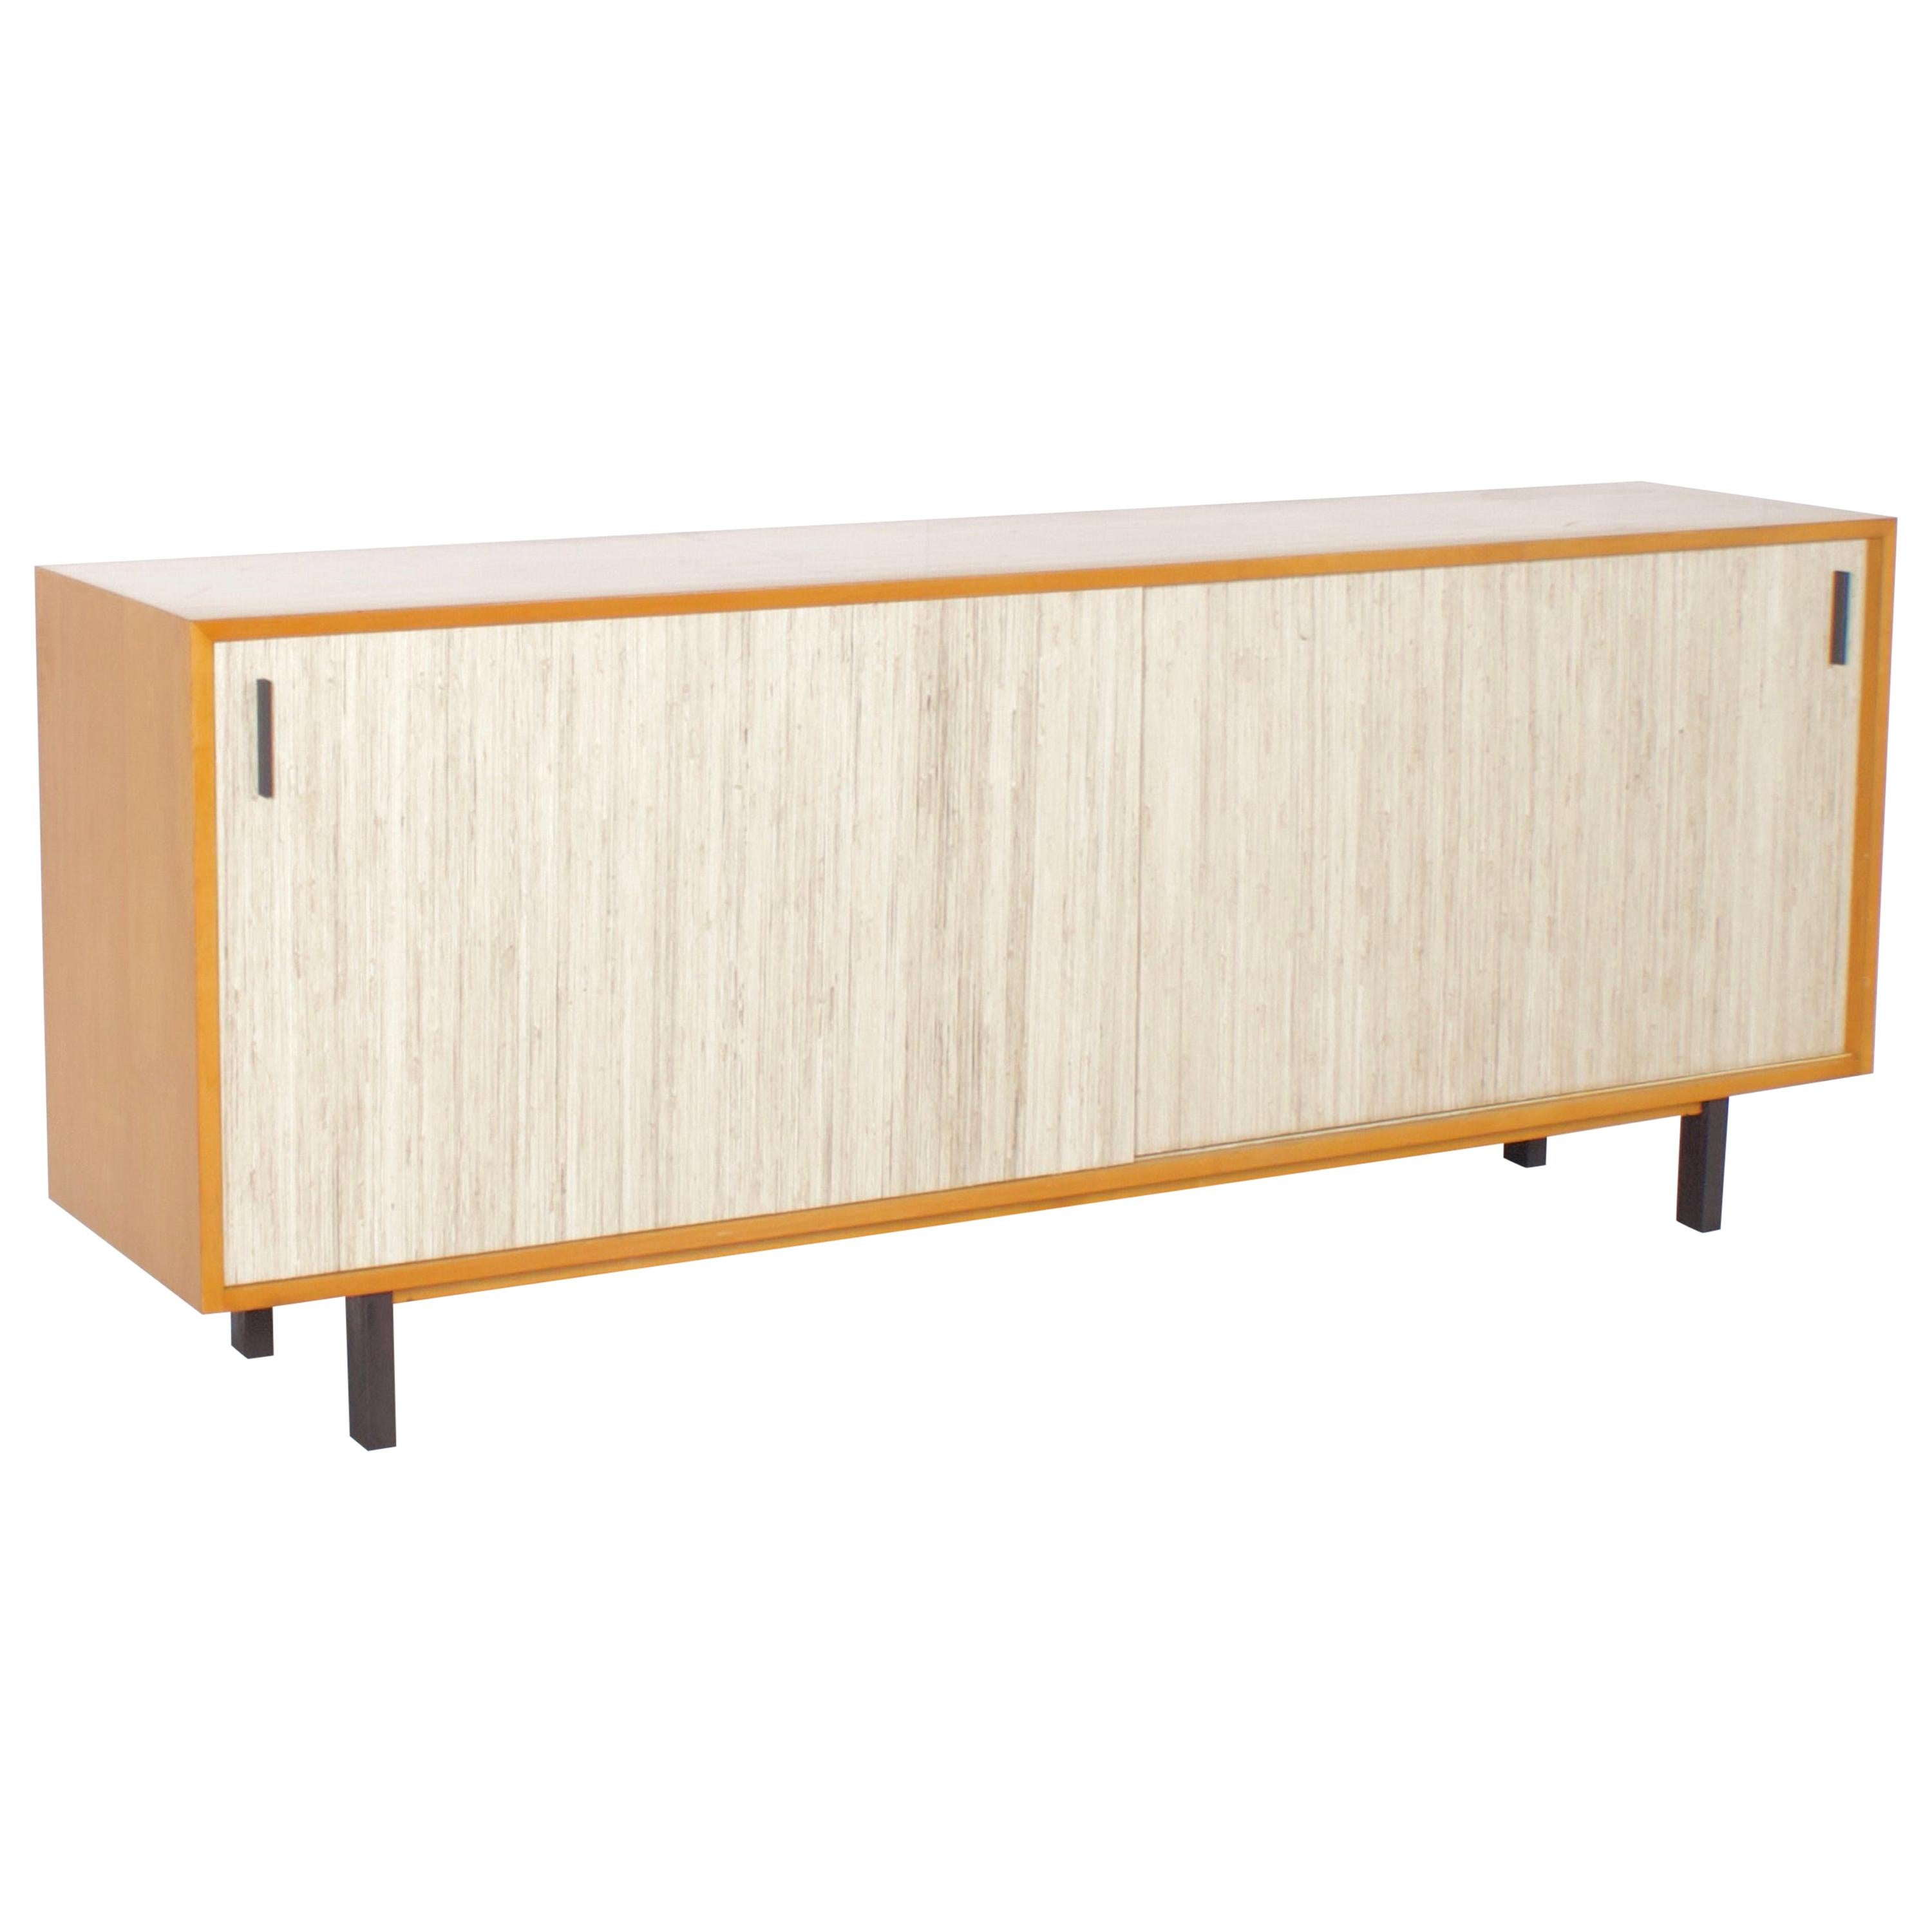 Beautiful Midcentury Maple and Cane Sideboard with Sliding Doors, Italy, 1960s